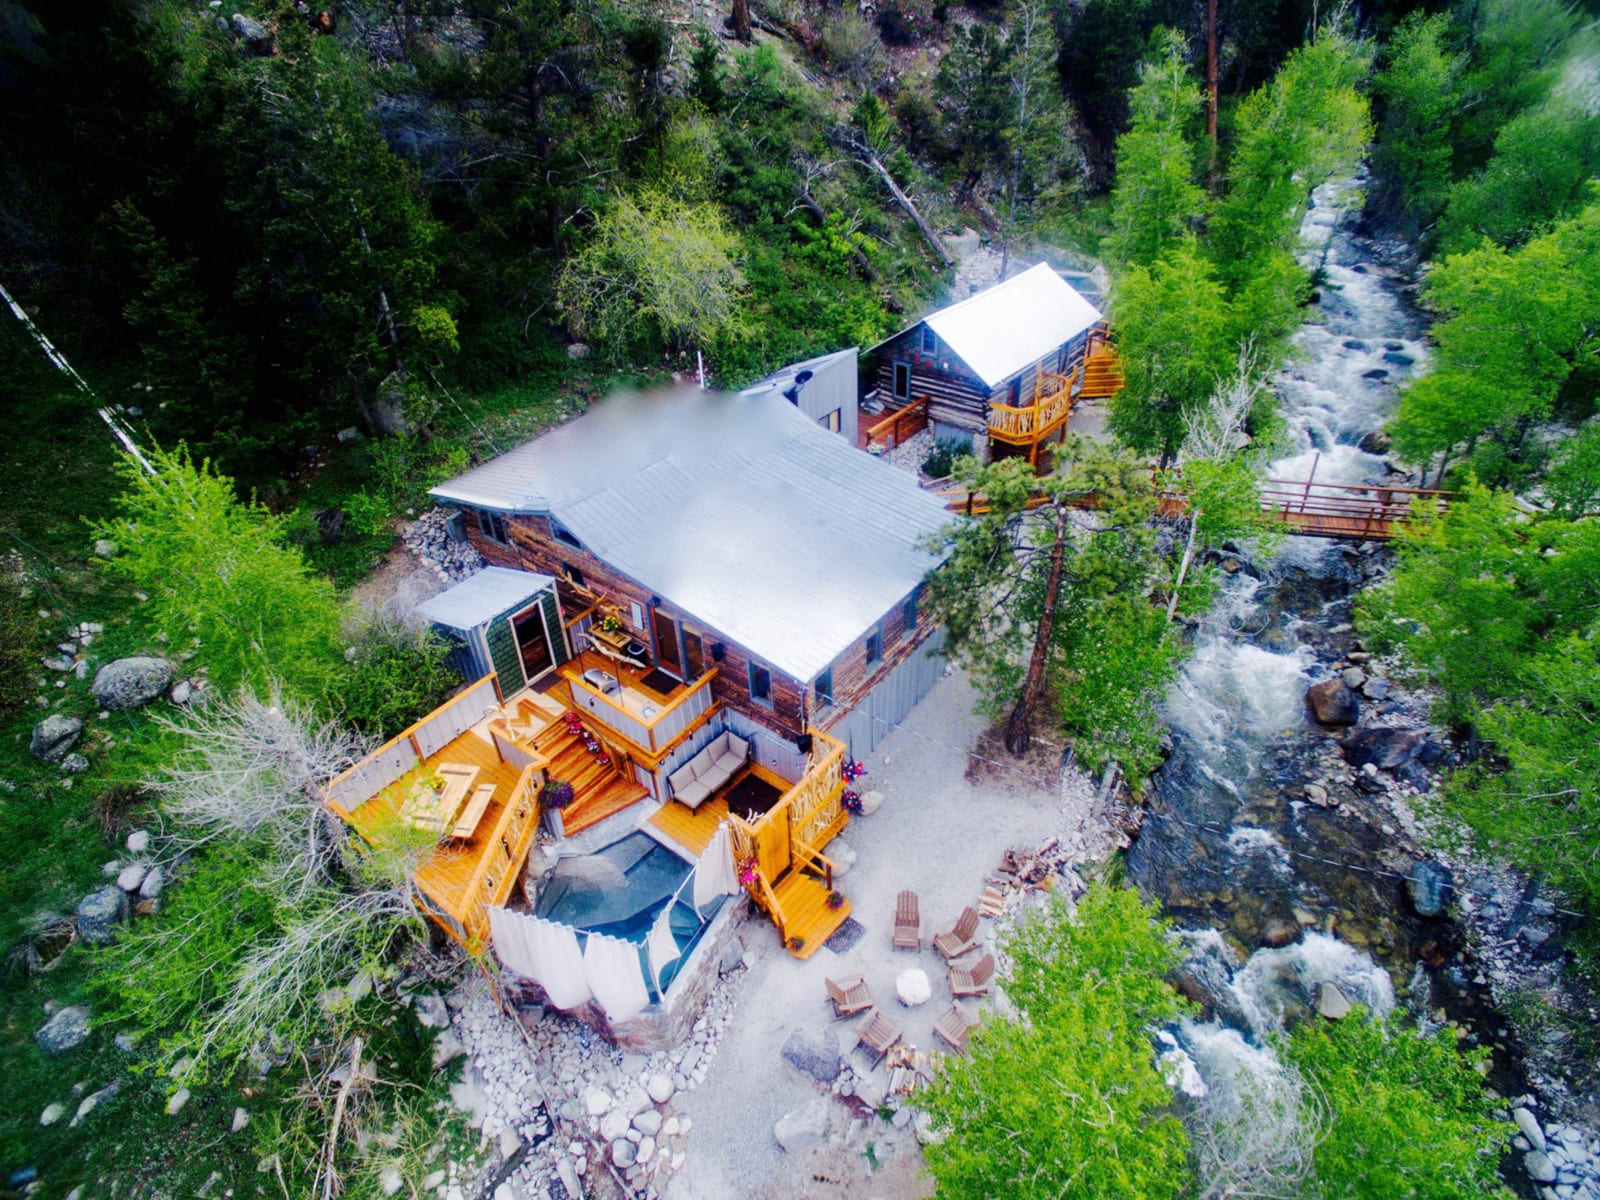 Merrifield Homestead Cabins and Hot Springs Buena Vista CO Aerial